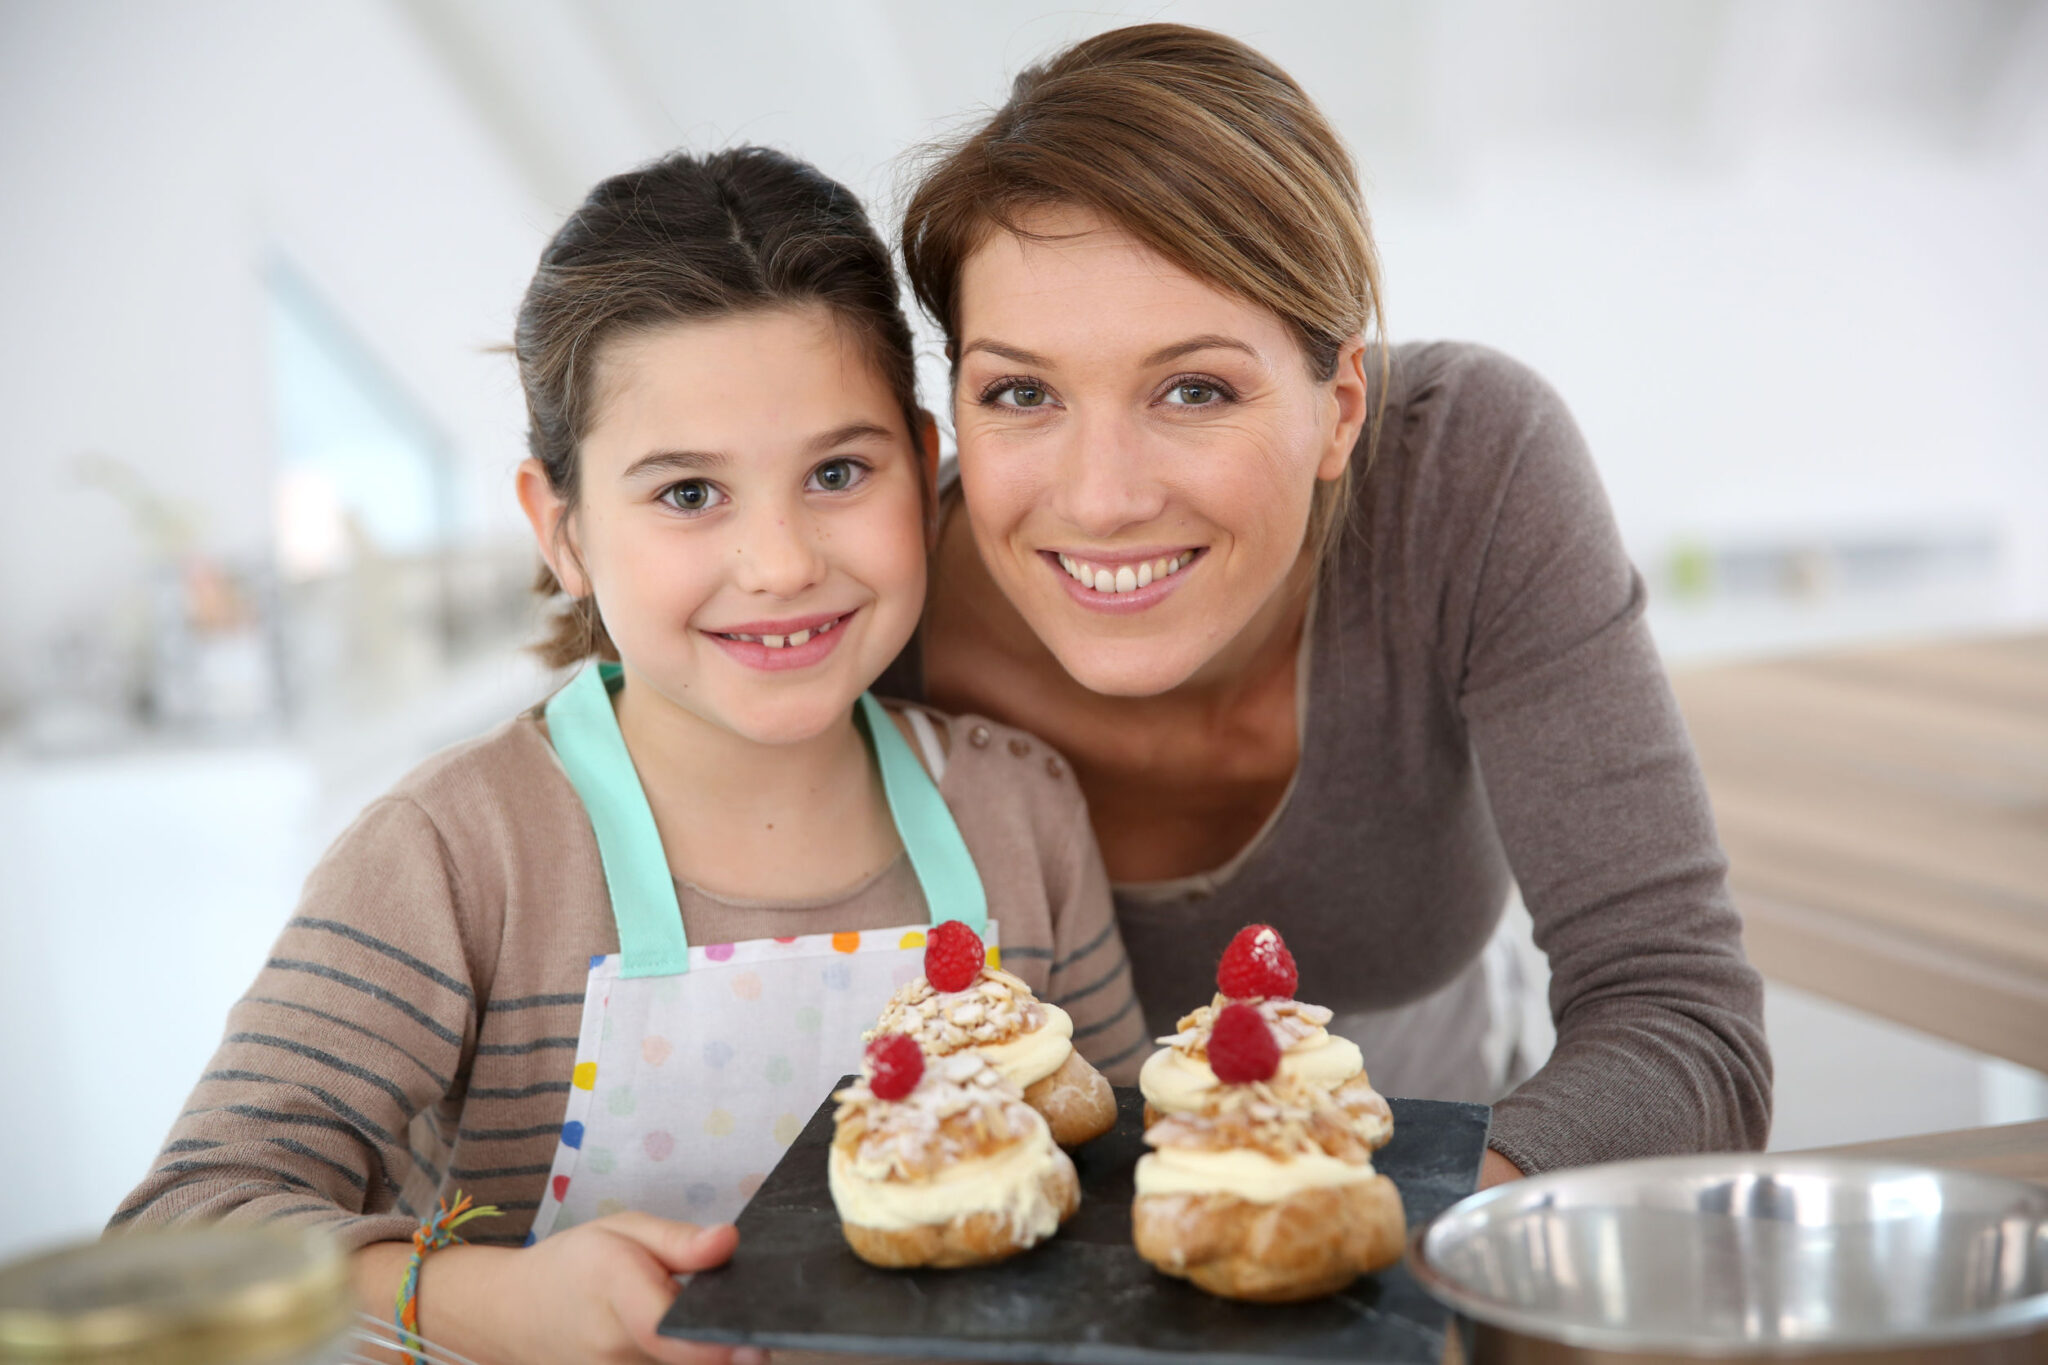 Nanny and girl, brunettes, baking decorative cakes